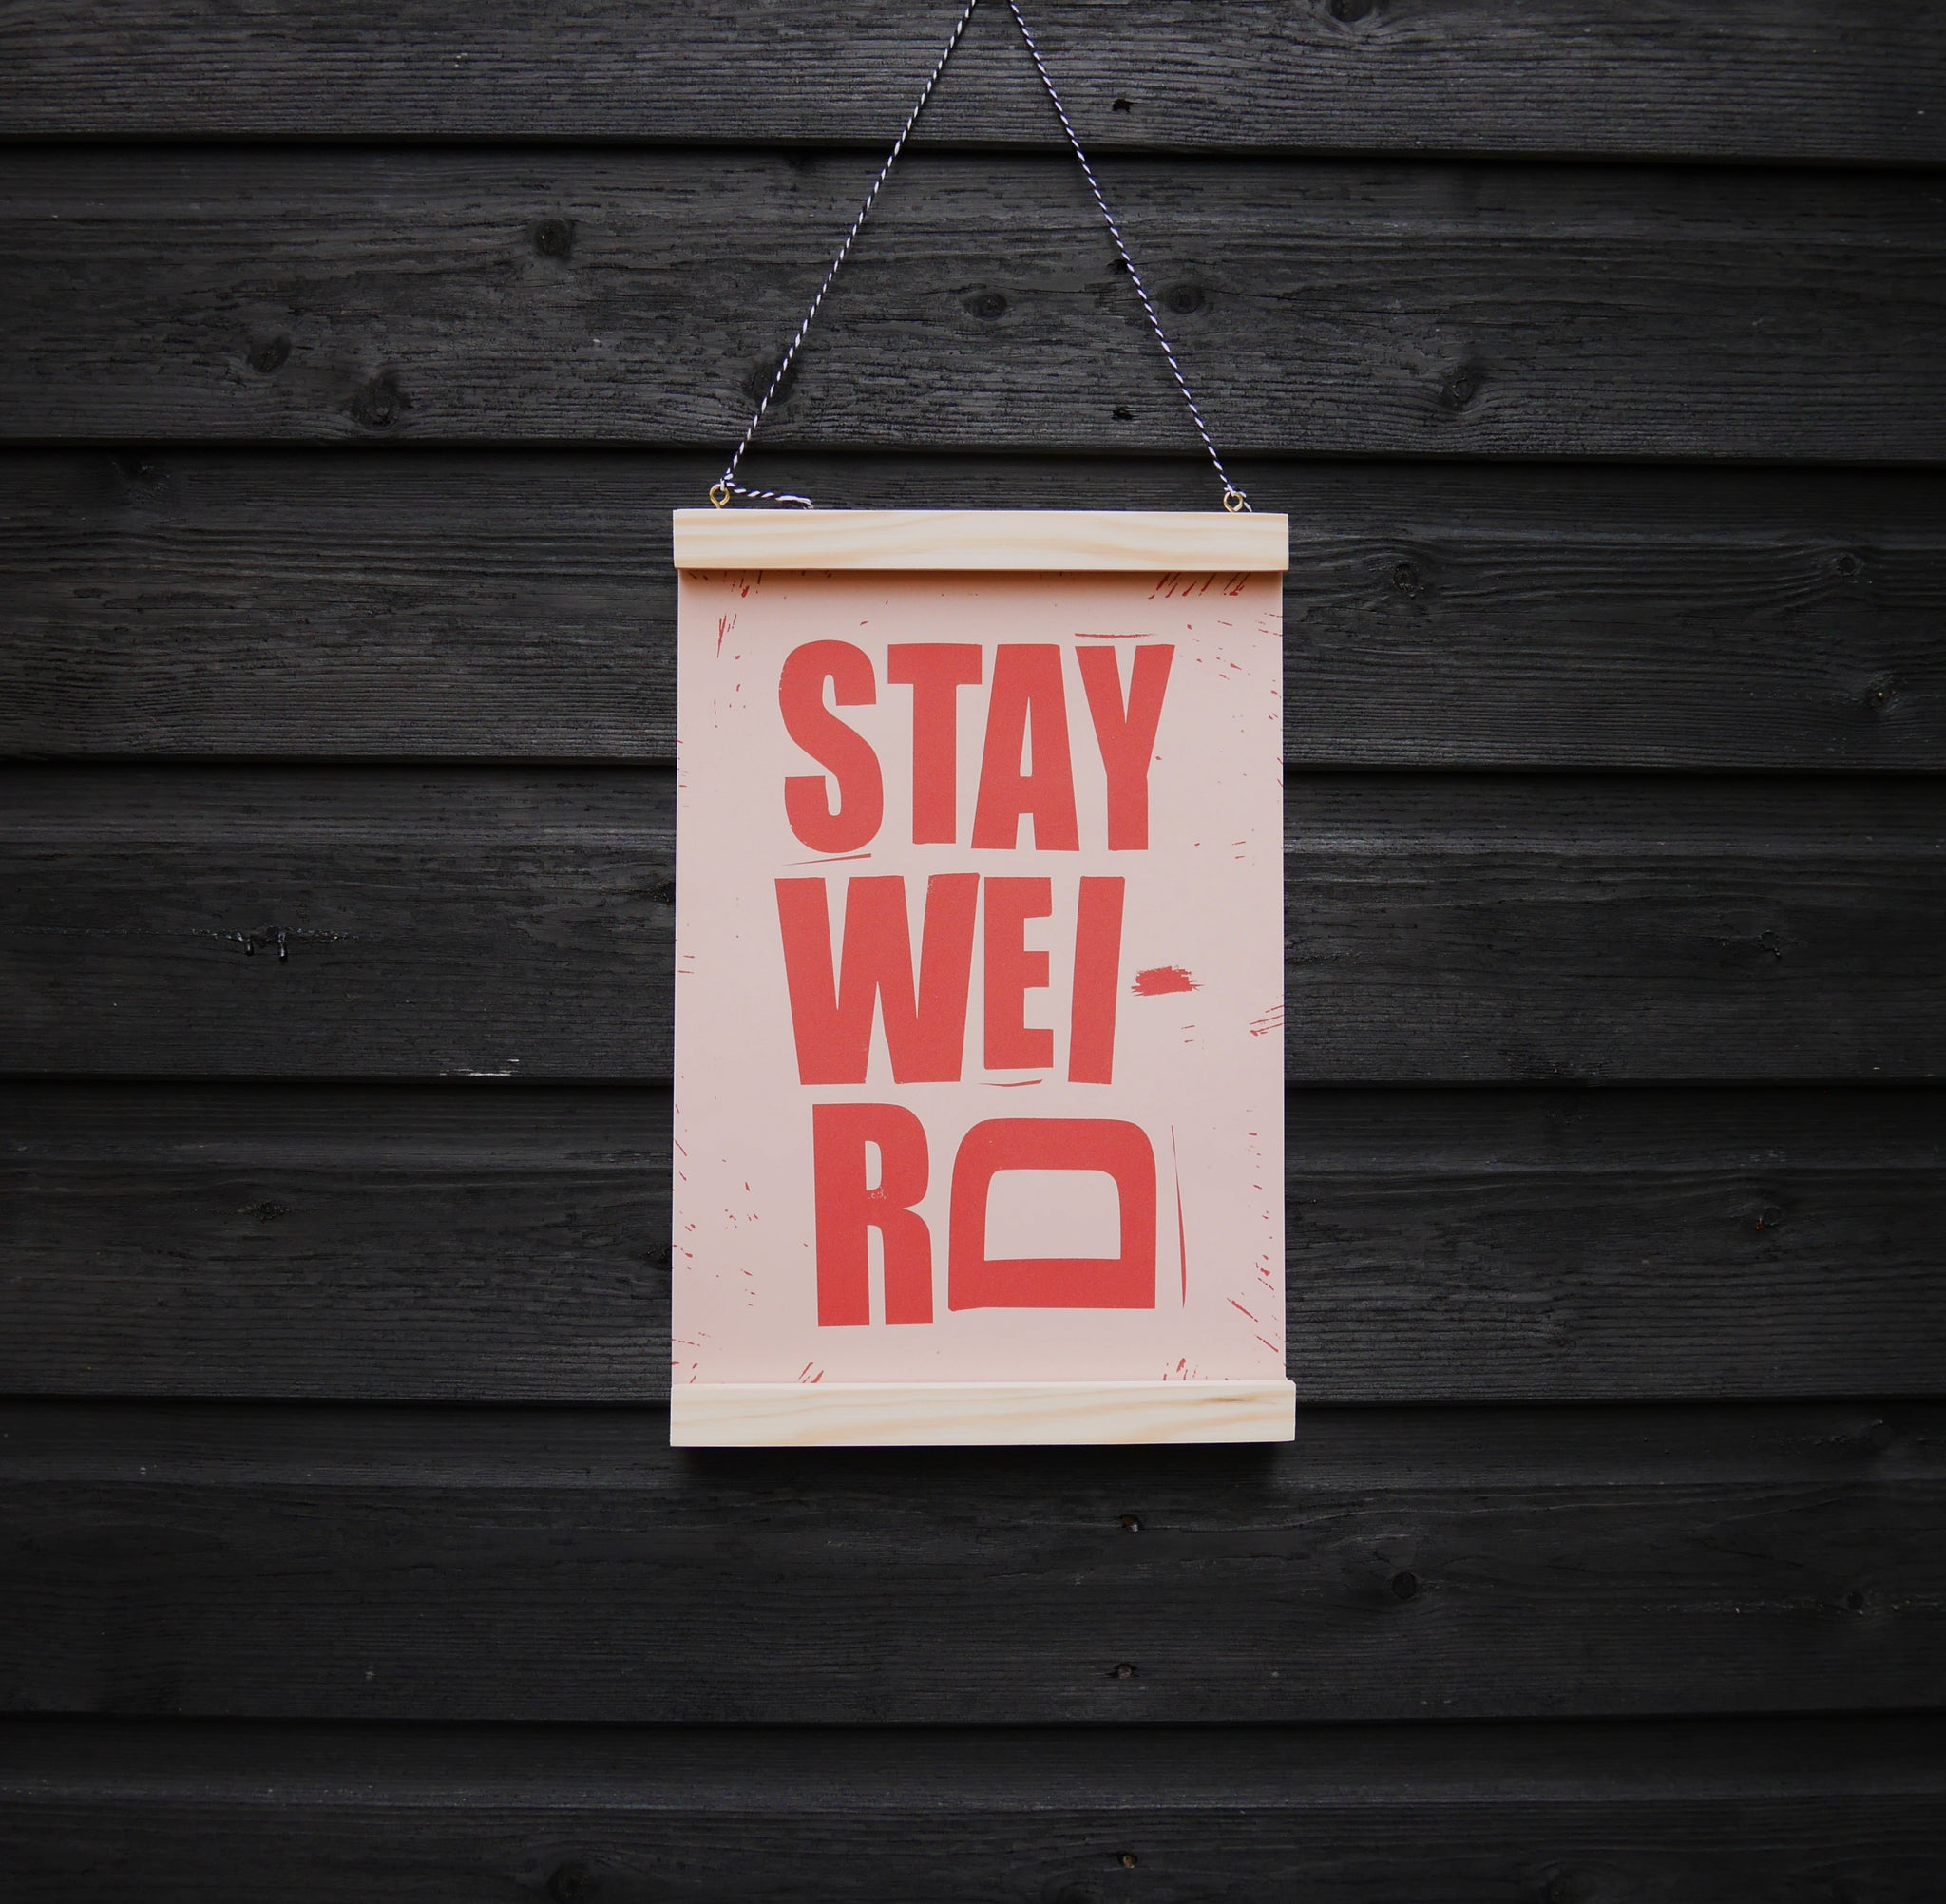 stay weird hand created printed text recycled paper